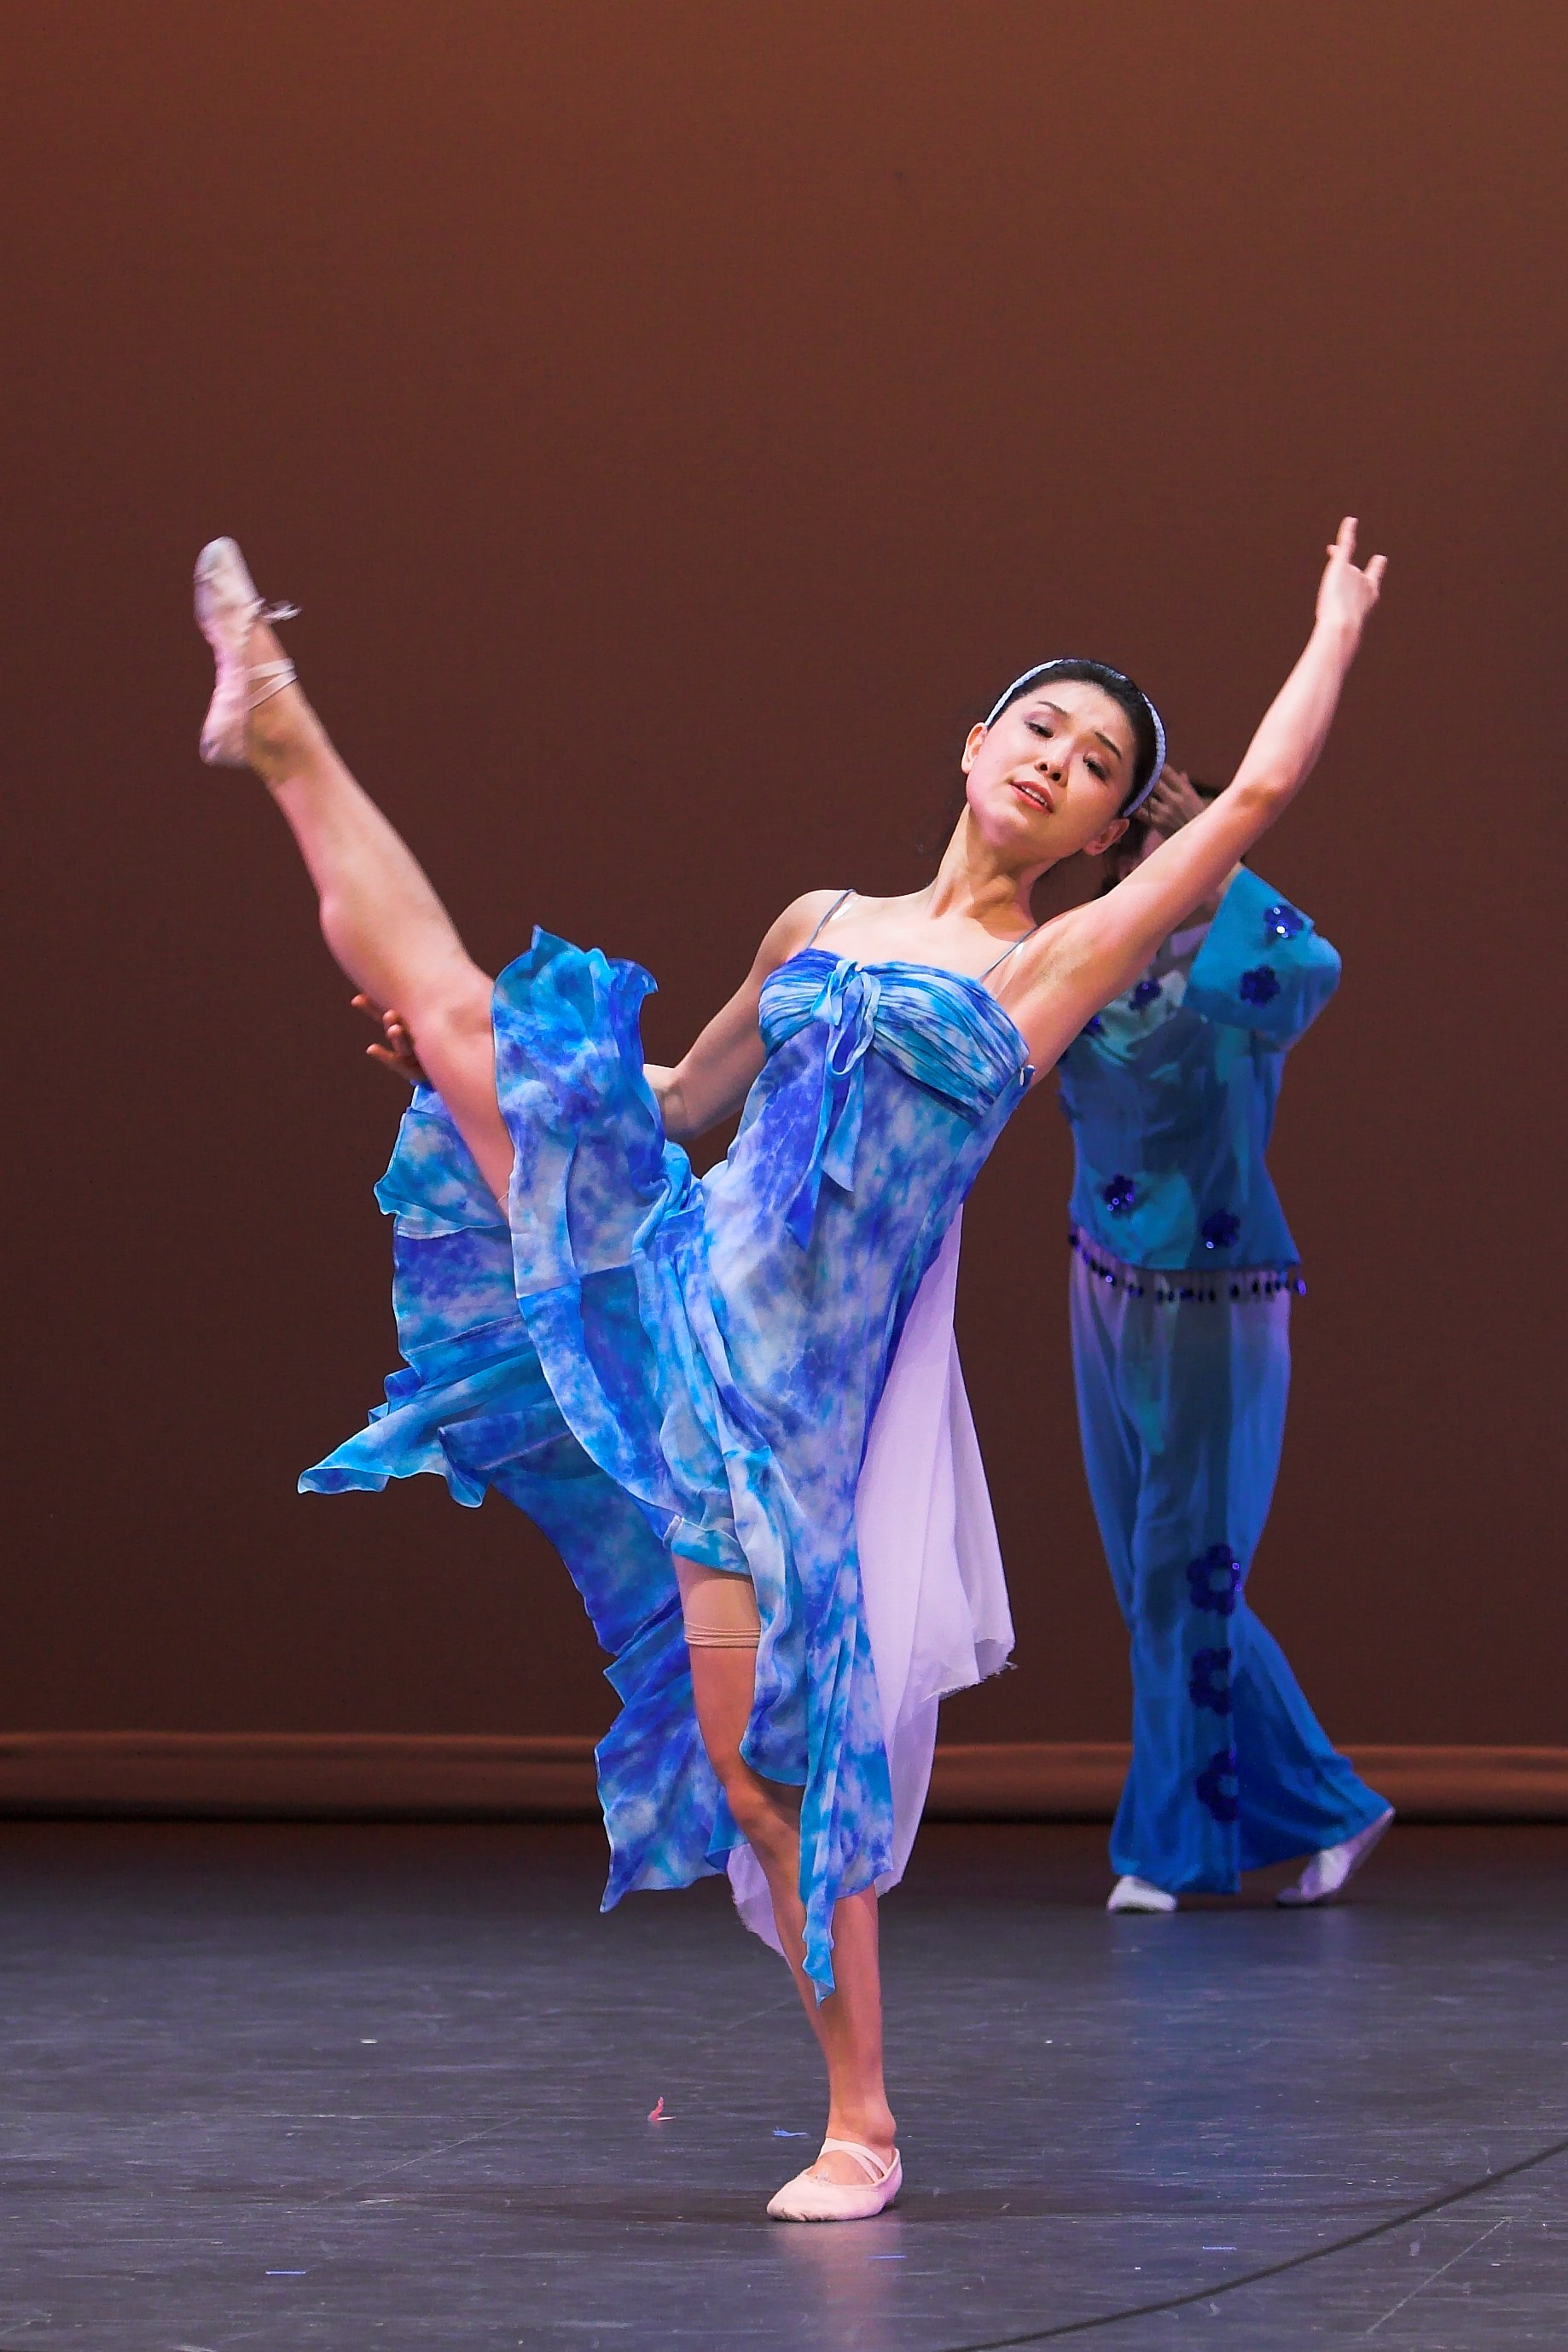 2007 Winter Performing Art Series at Redmond Image 61